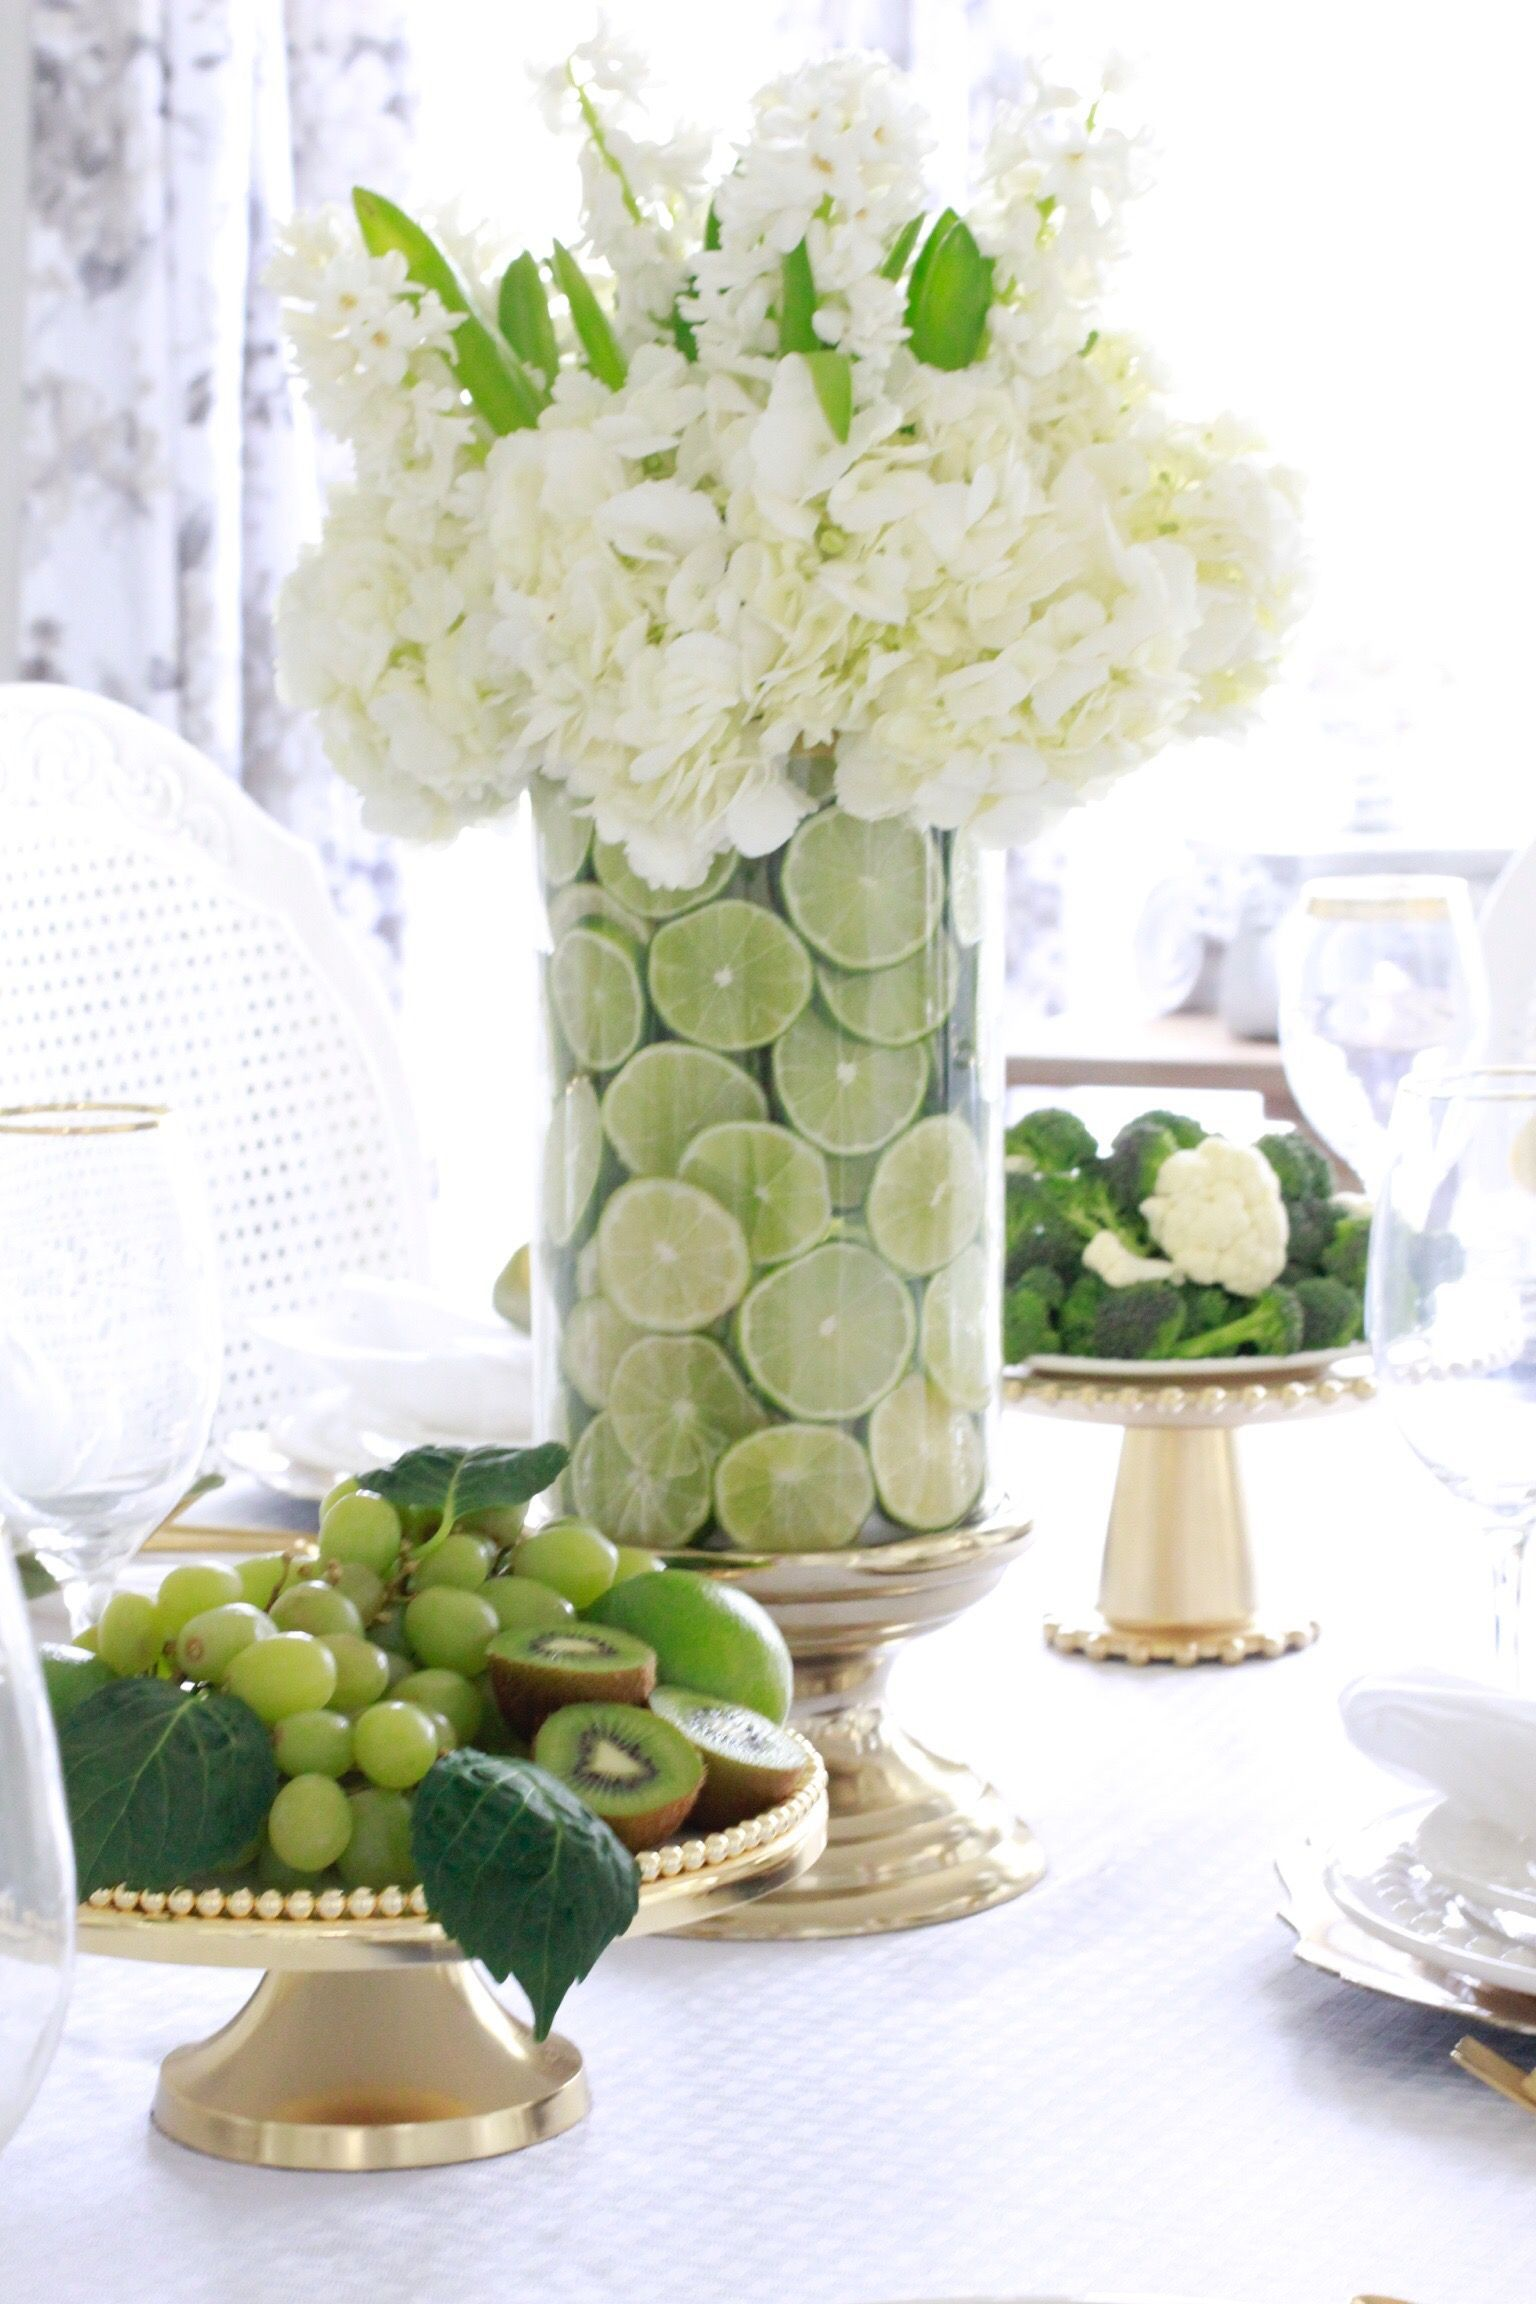 Learn How To Create A Fruit And Fl Arrangement In Just Few Easy Steps